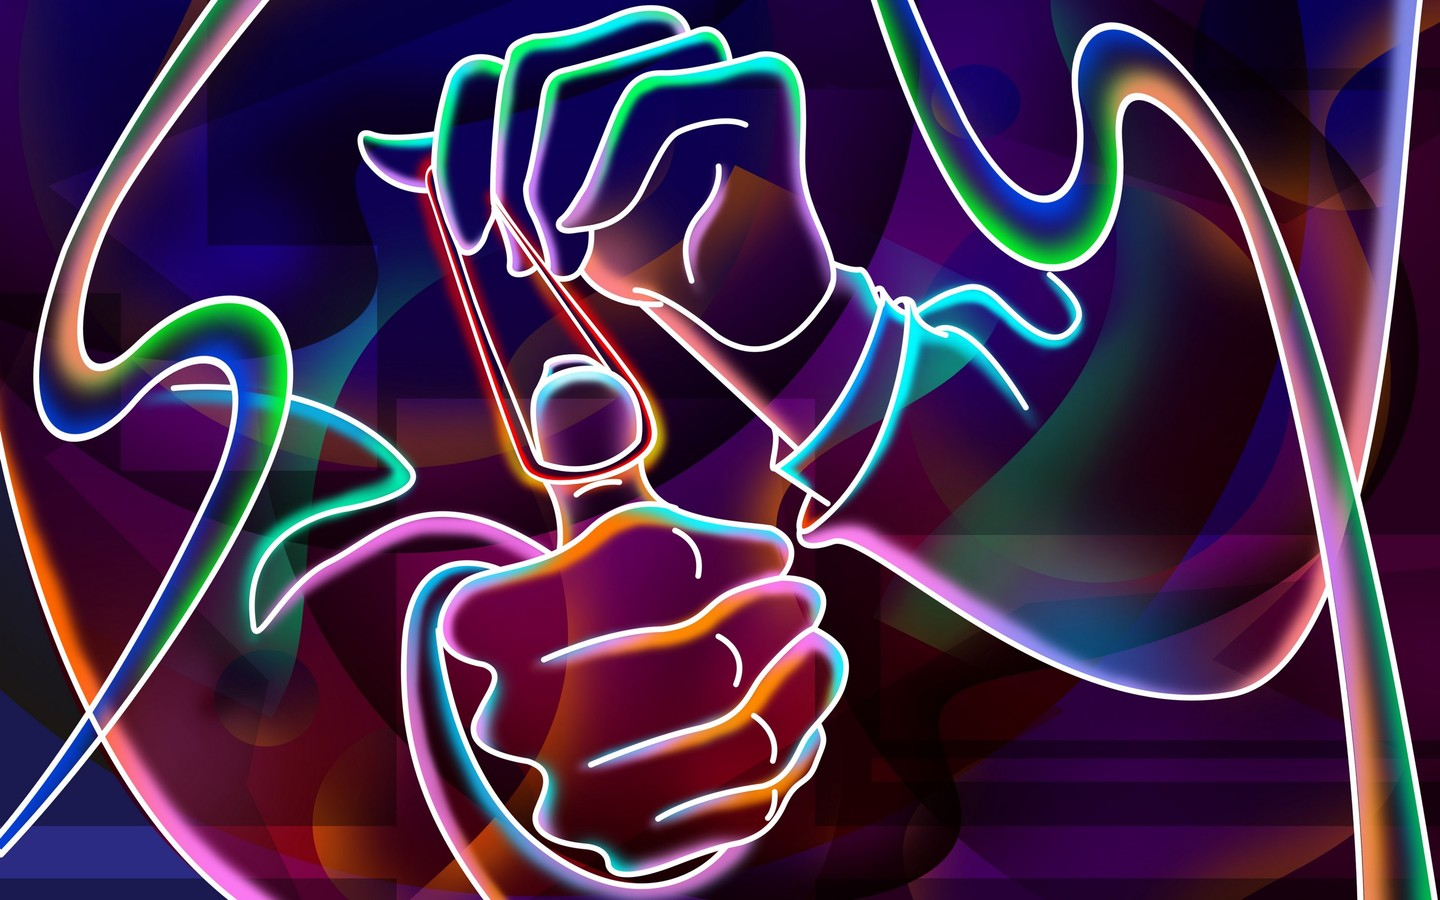 Animated Wallpaper Windows 8 Free Strictly Wallpaper Neon Wallpapers 3